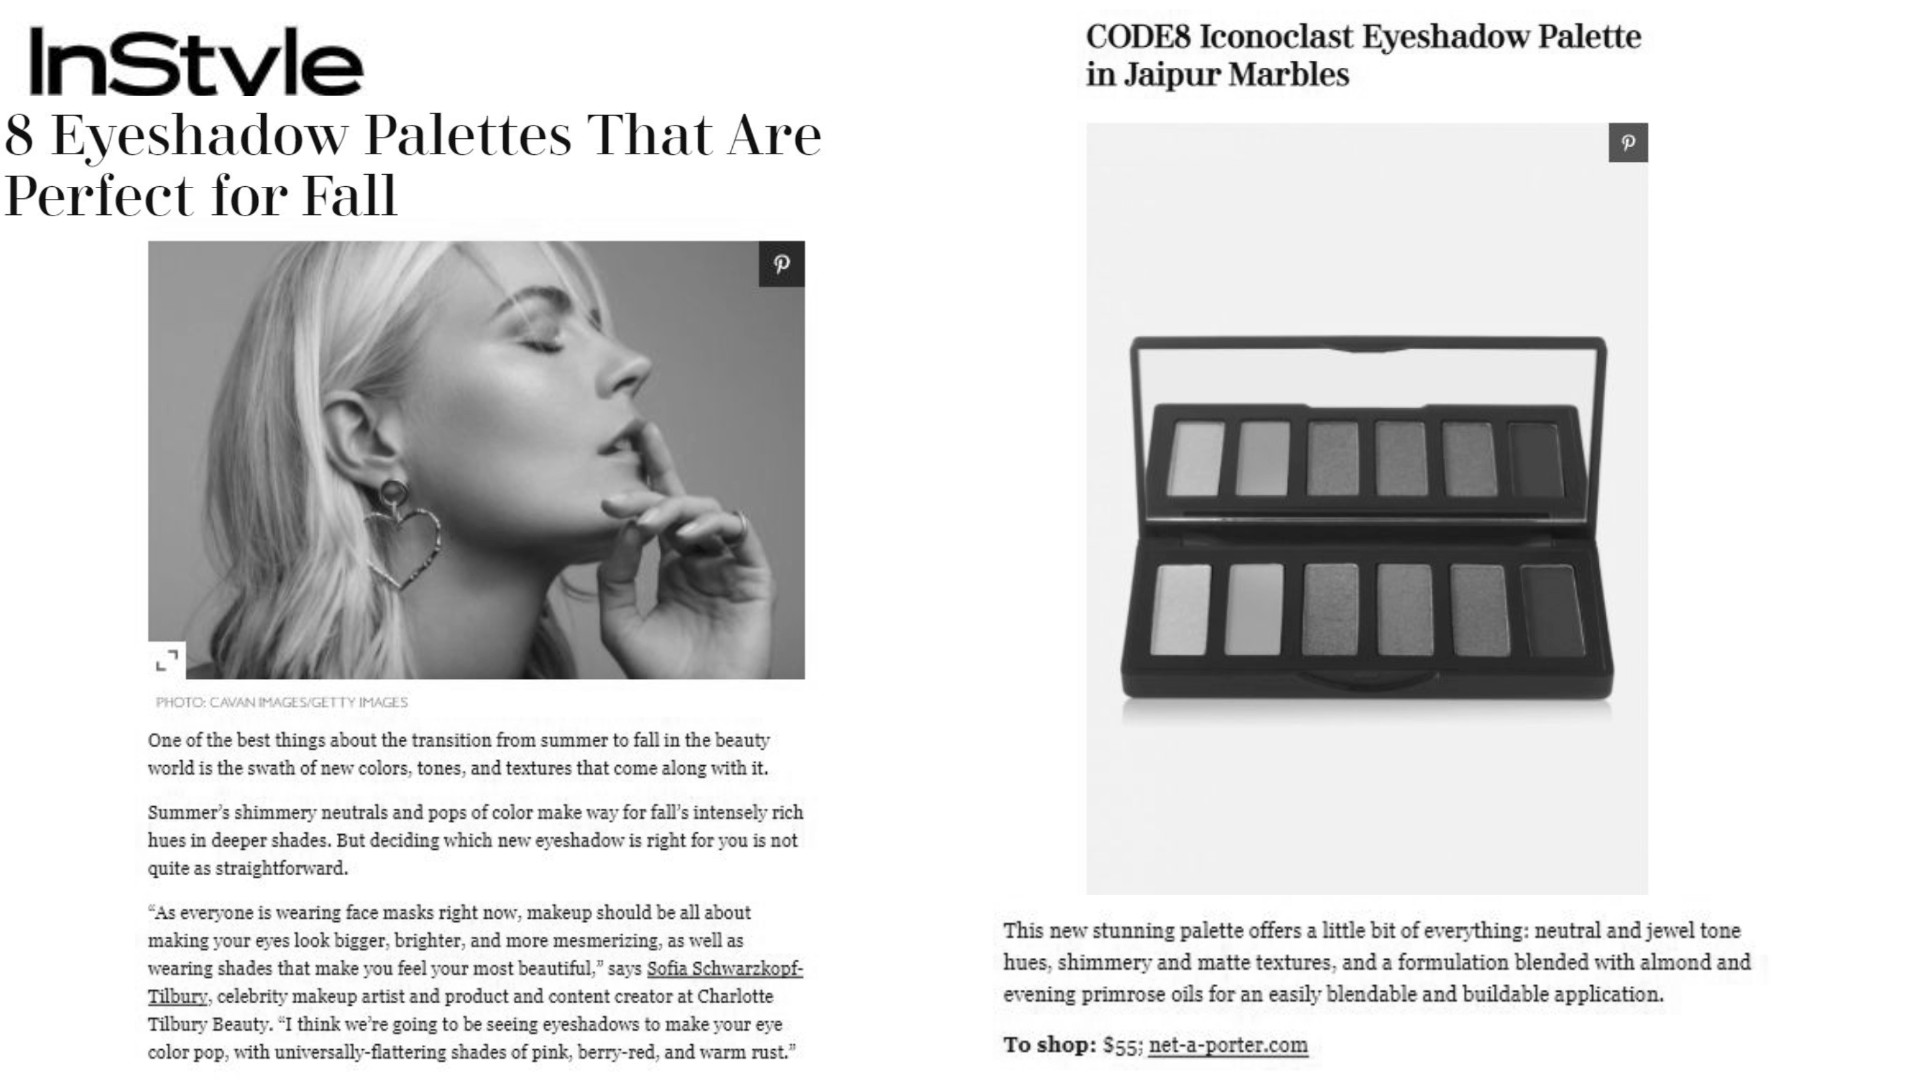 Code8 on InStyle